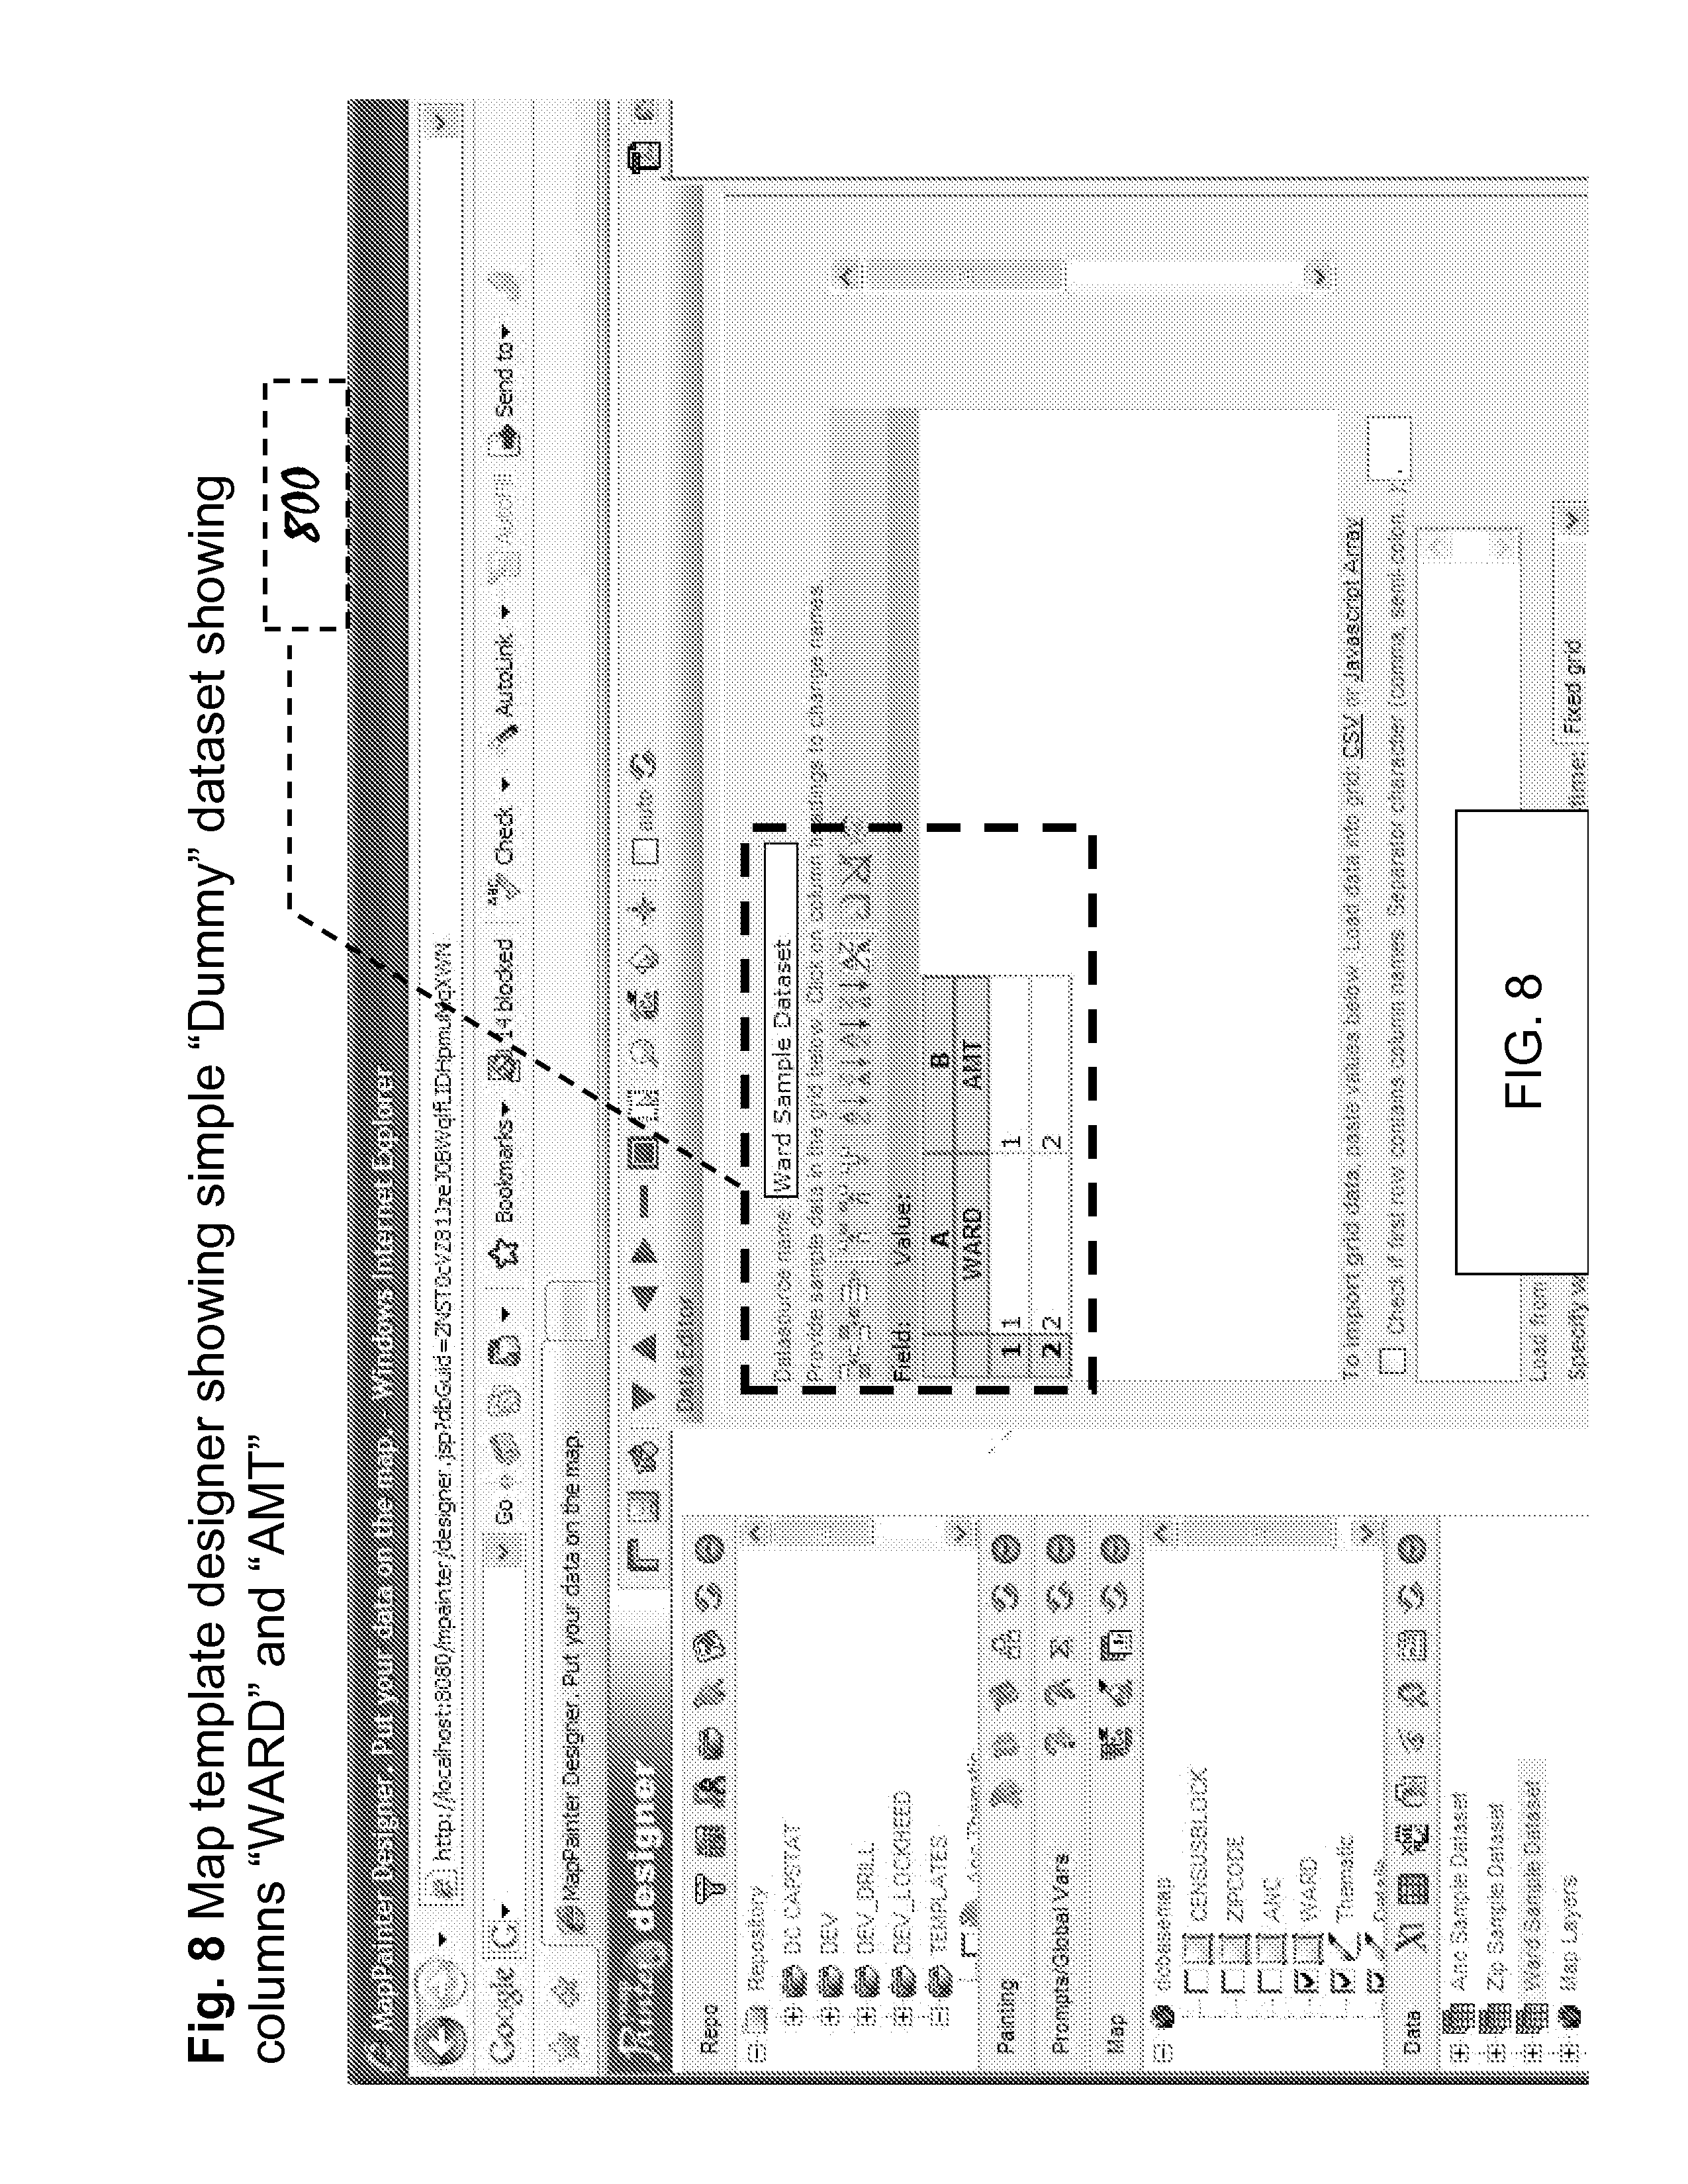 patent specification template - patent us7962443 method and system for replacing data in